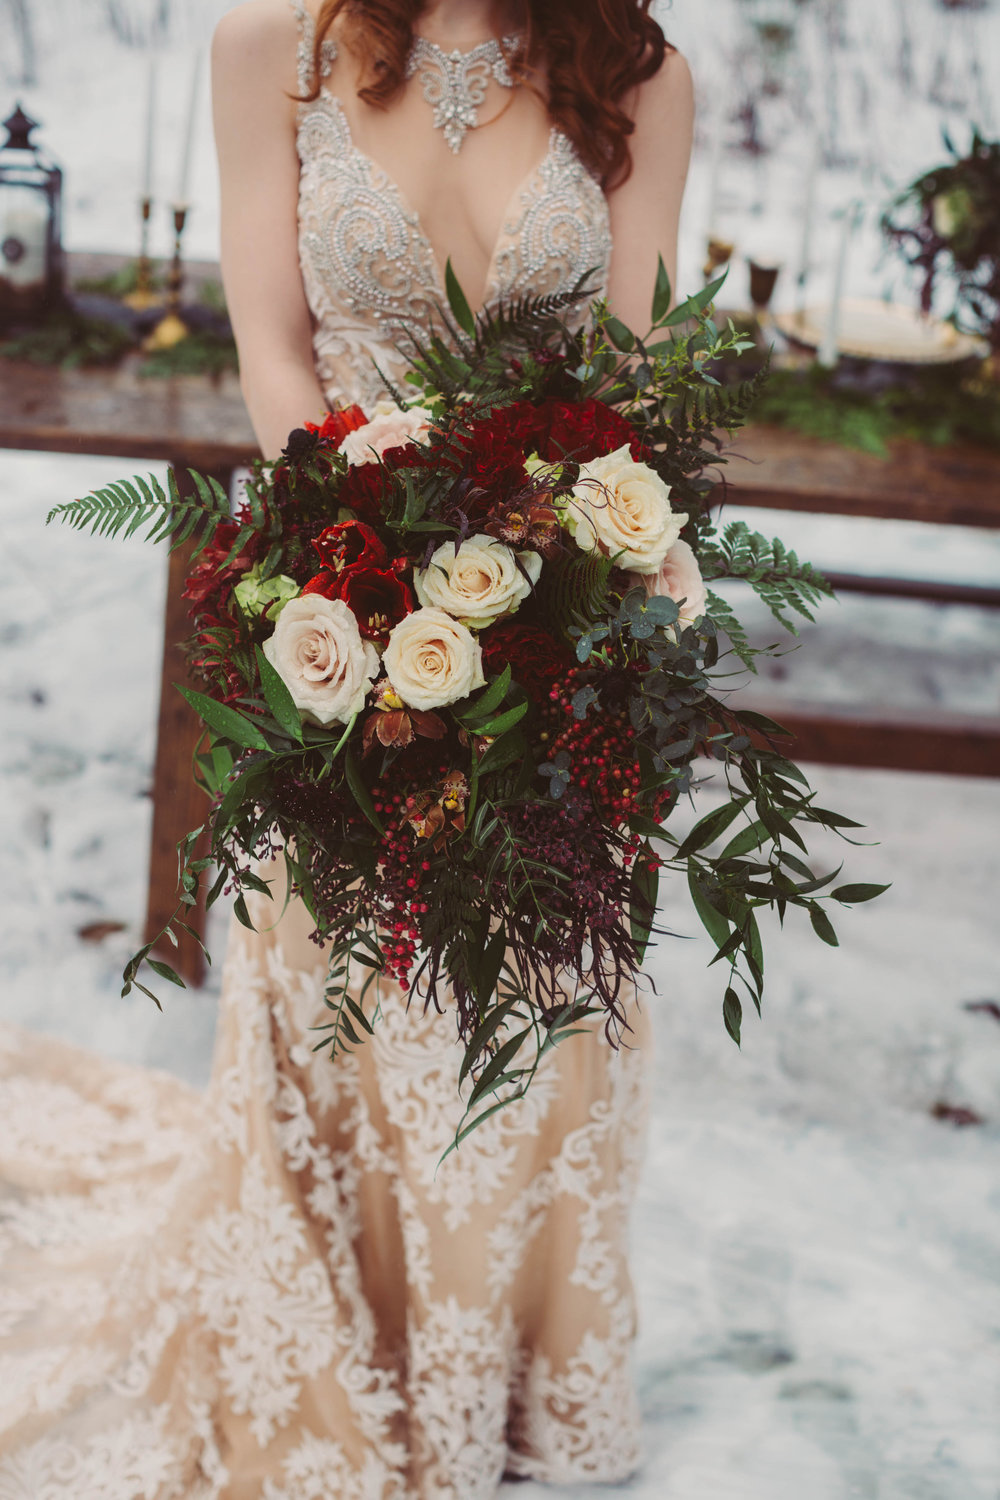 Winter F ern Stylized Wedding-Finished-0076.jpg